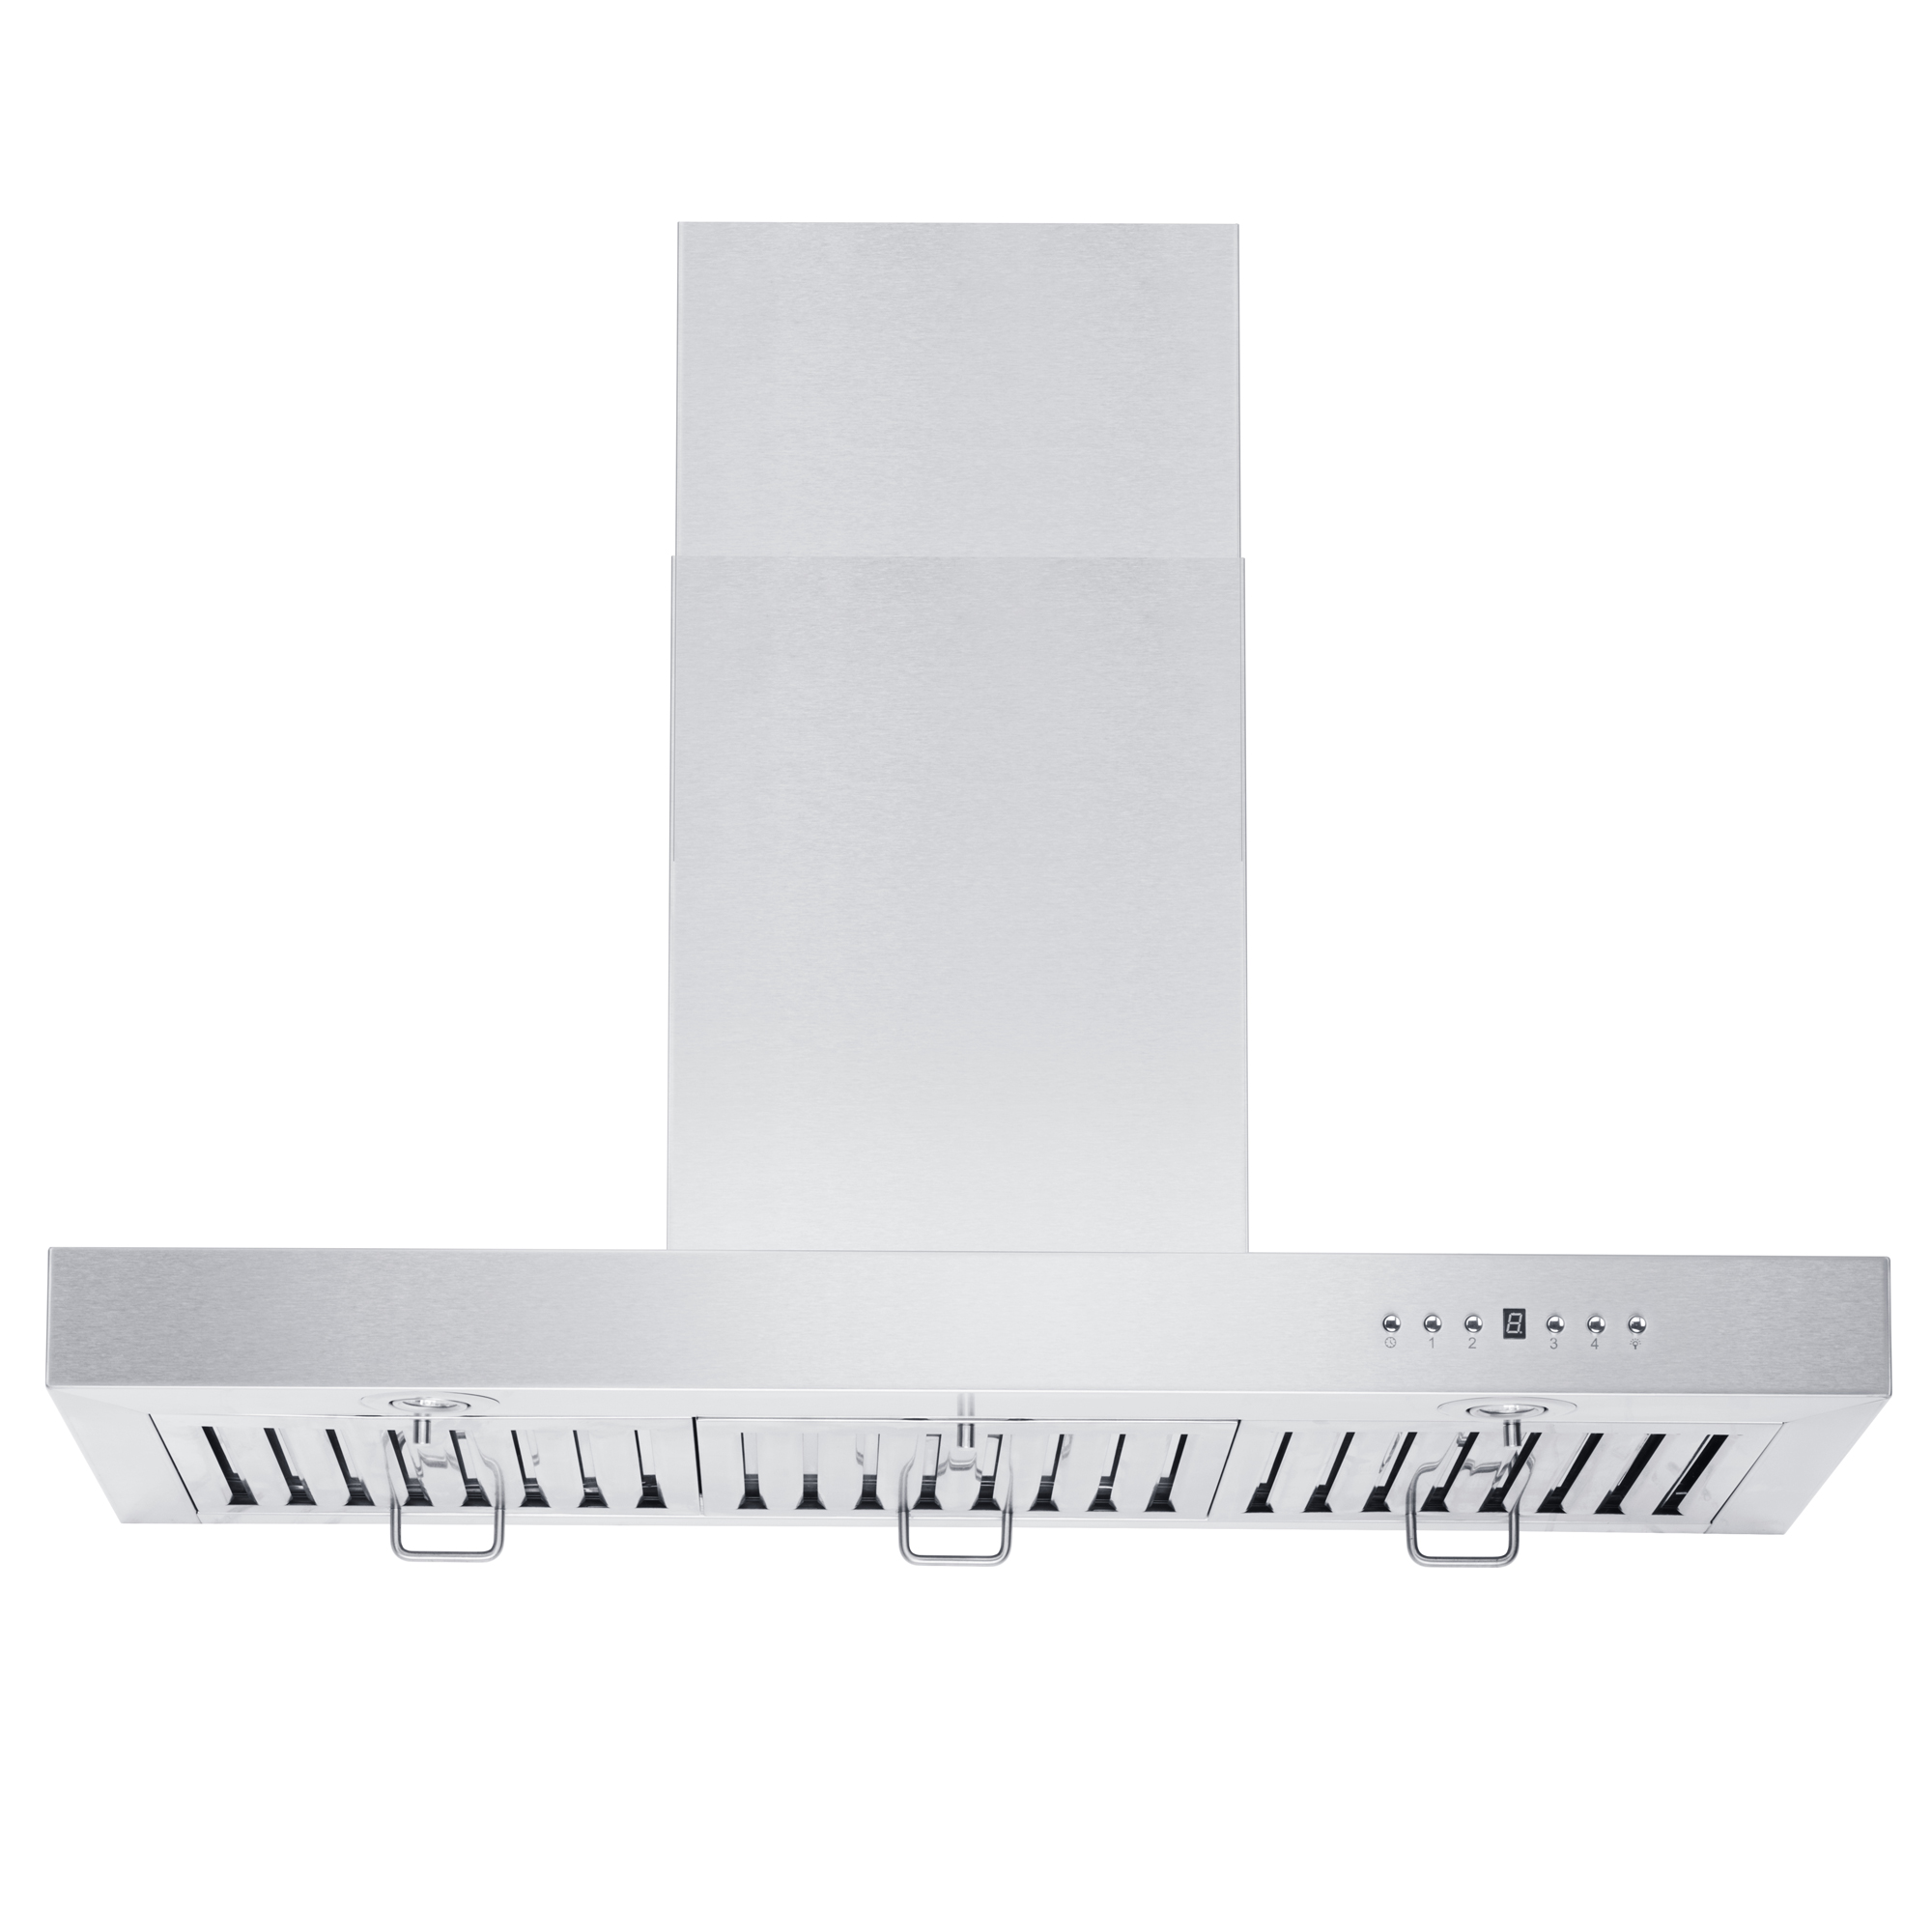 zline-stainless-steel-wall-mounted-range-hood-KE-new-new-bottom.jpg